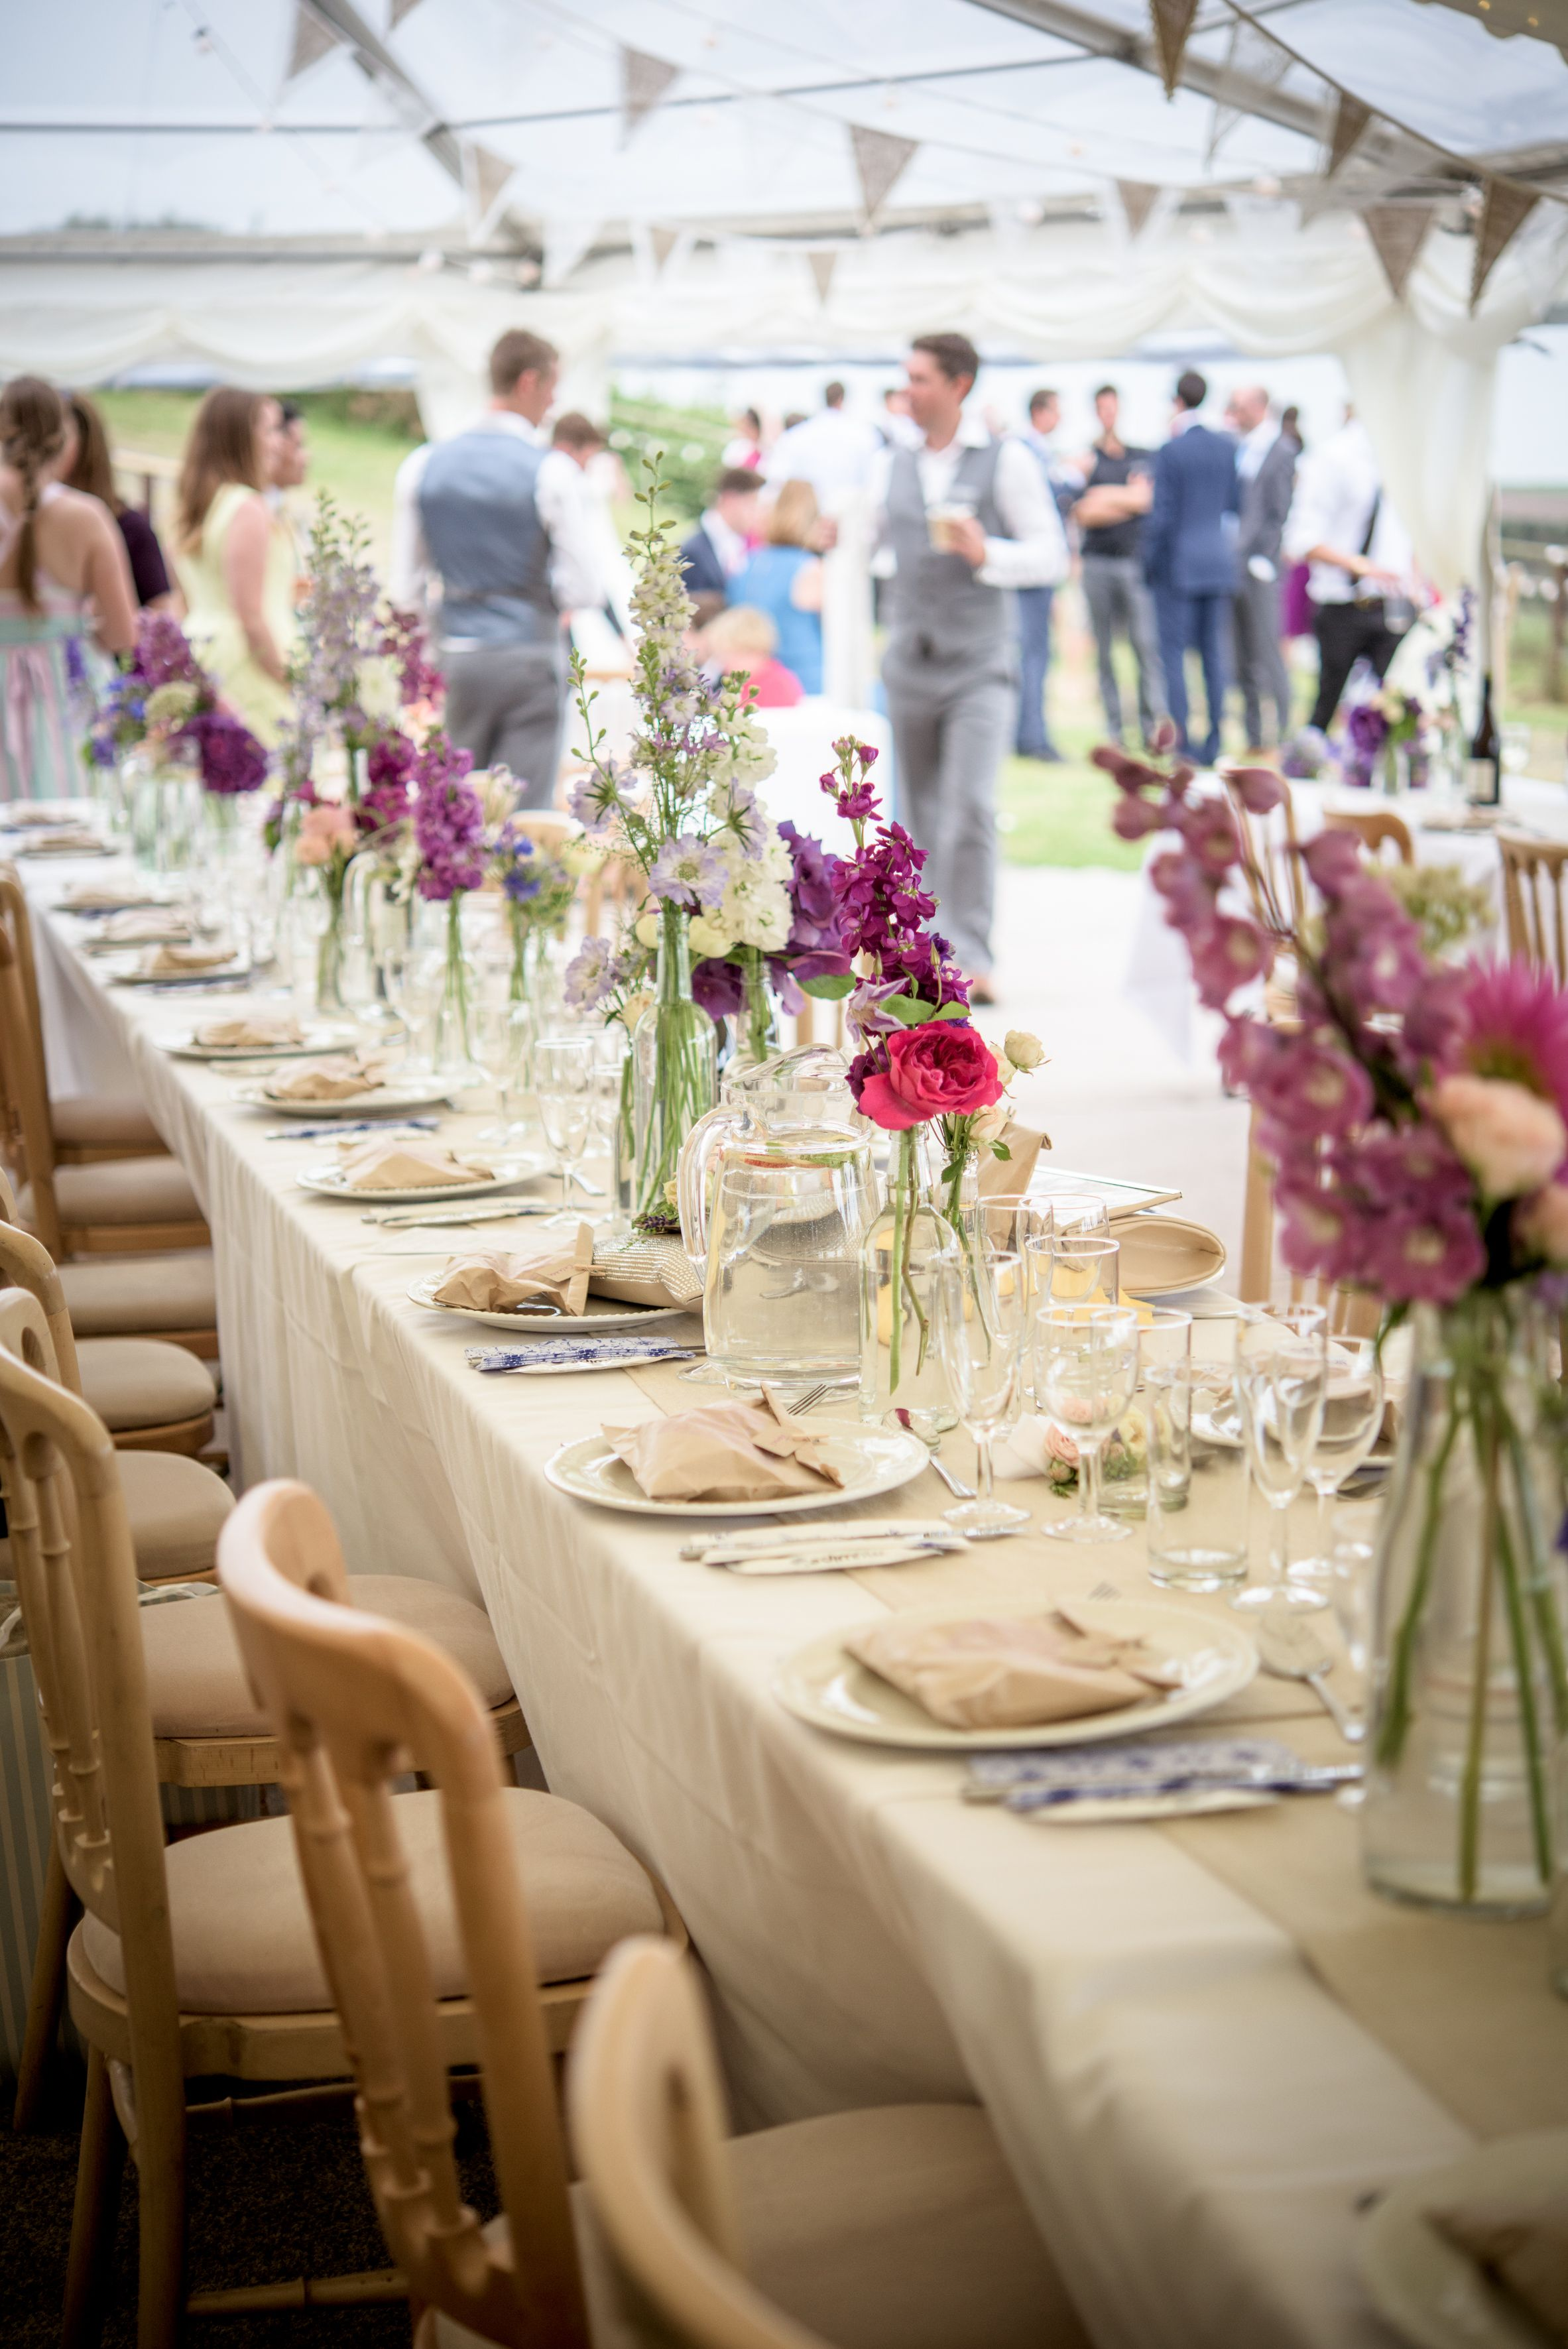 Beautiful Wedding Marquee With Country Flowers Decorating Trestle Table Dining The C Marquee Wedding Decoration Marquee Wedding Wedding Table Decorations Diy